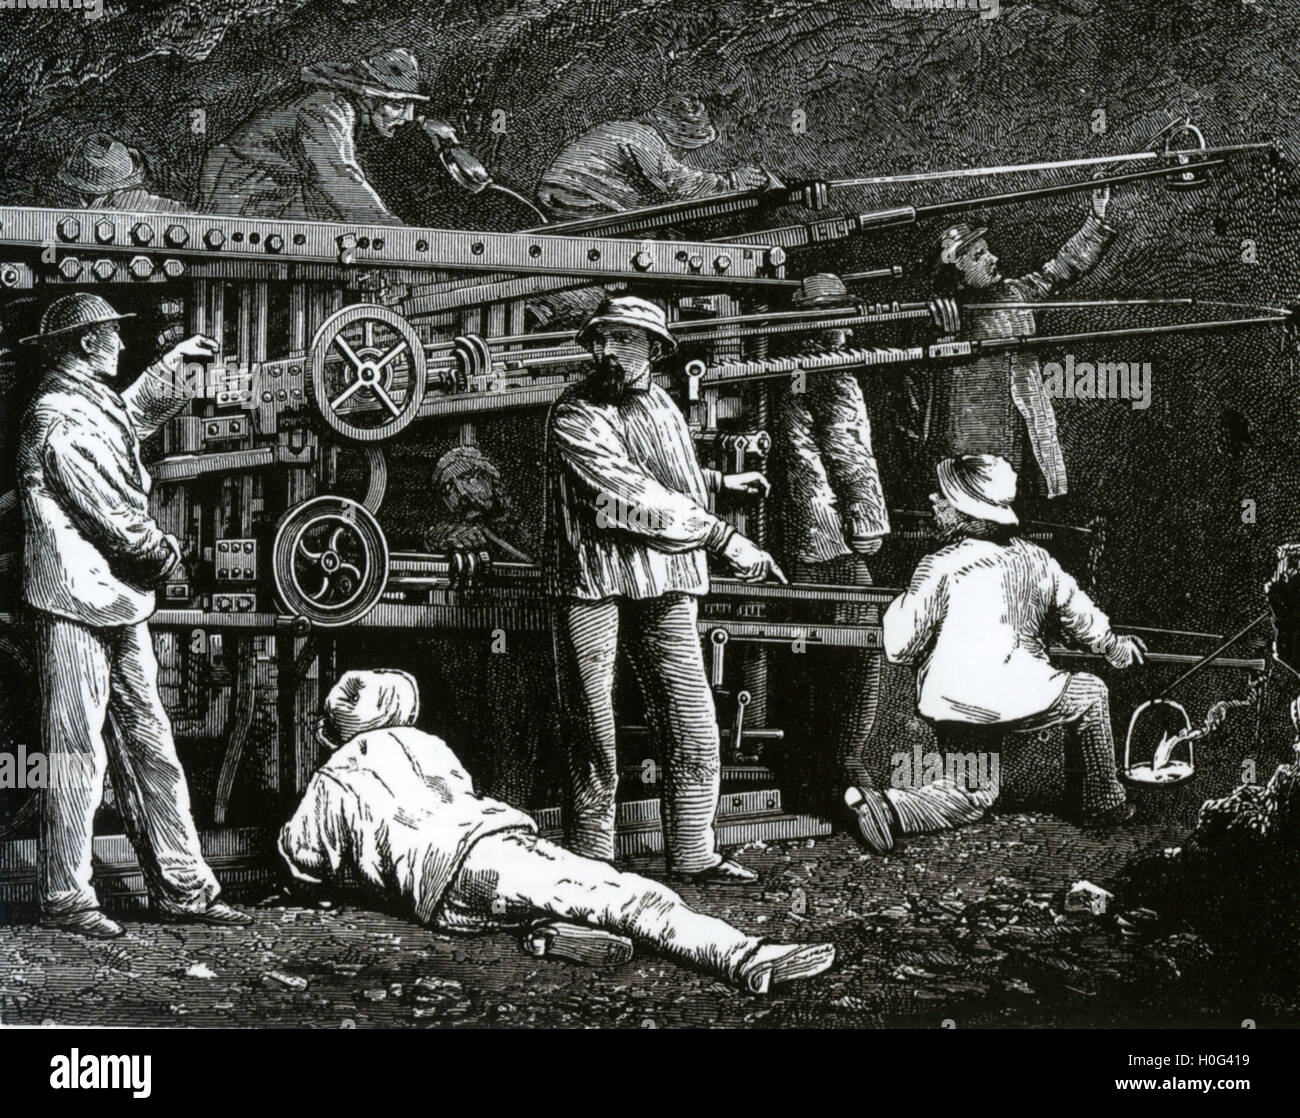 DRILLING THE MONT CENIS (aka Frejus) TUNNEL under the Alps between France and Italy in 1857 using the newly invented Stock Photo